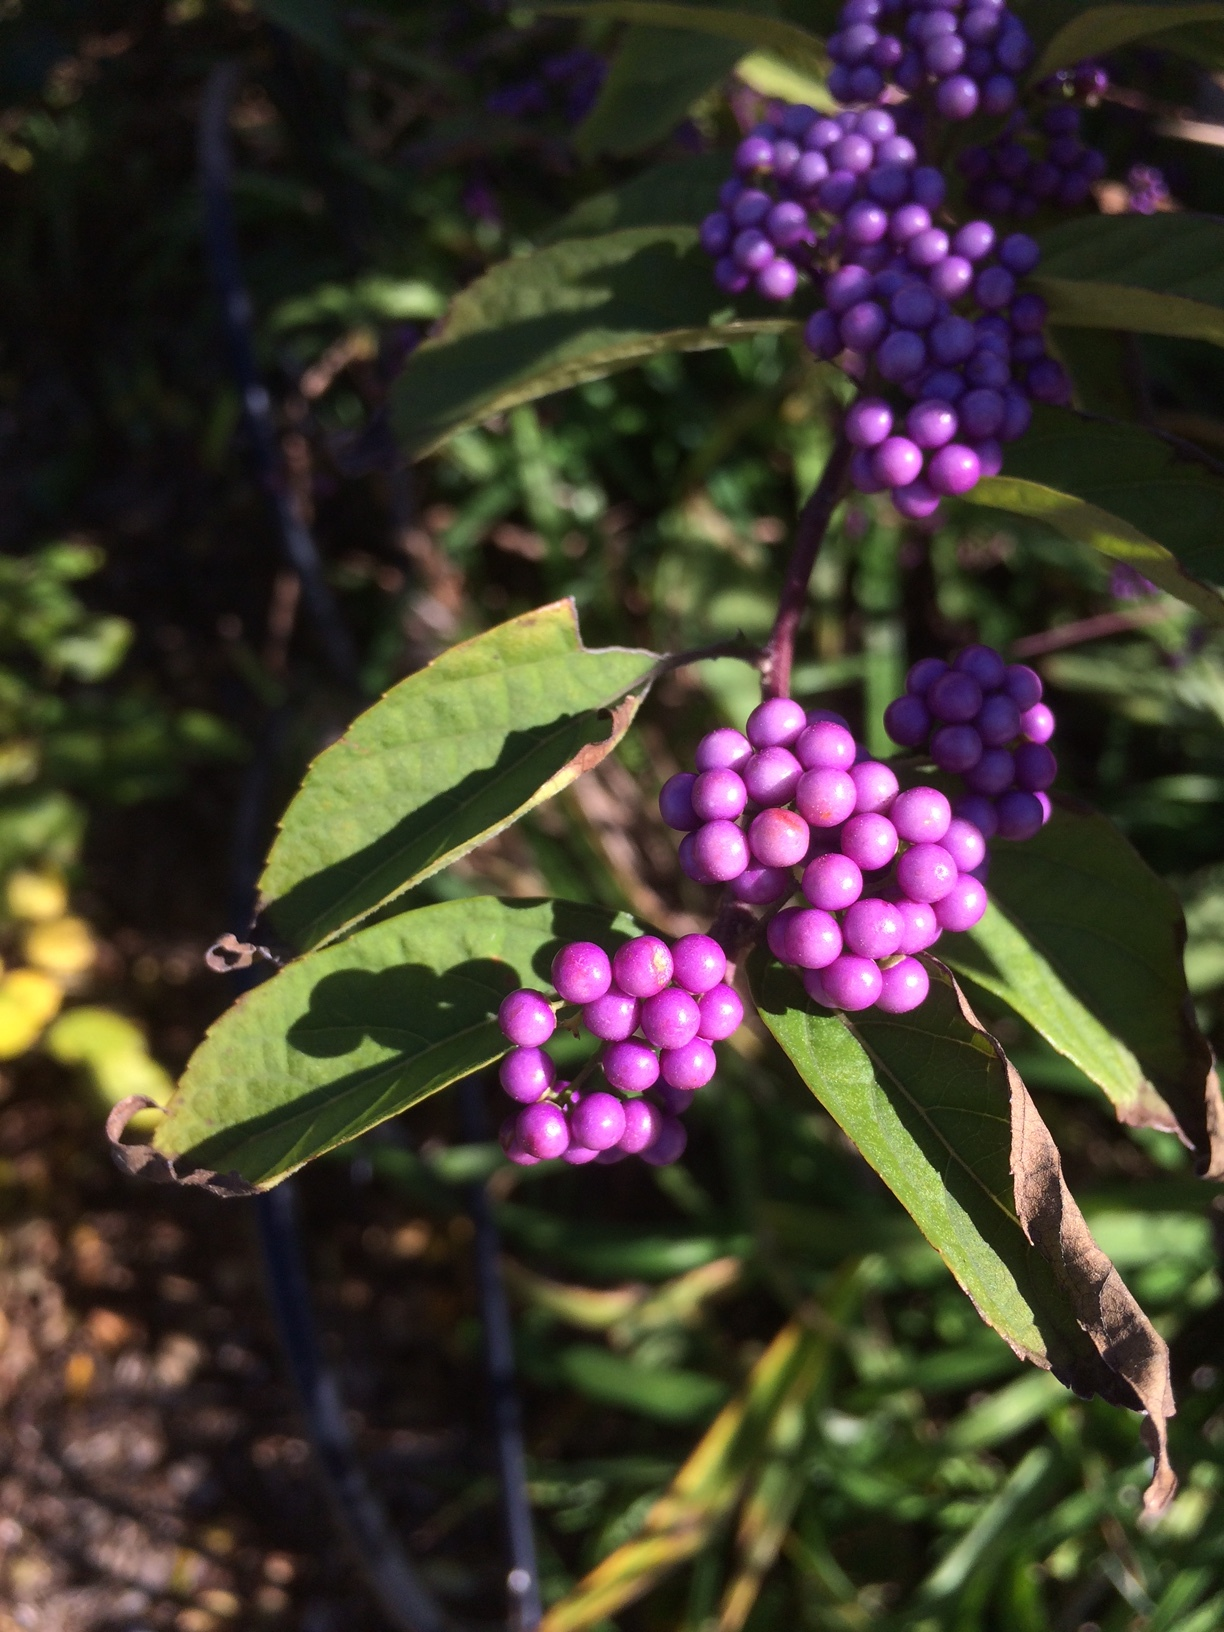 American Beauty Berries are busting out the extreme purple.